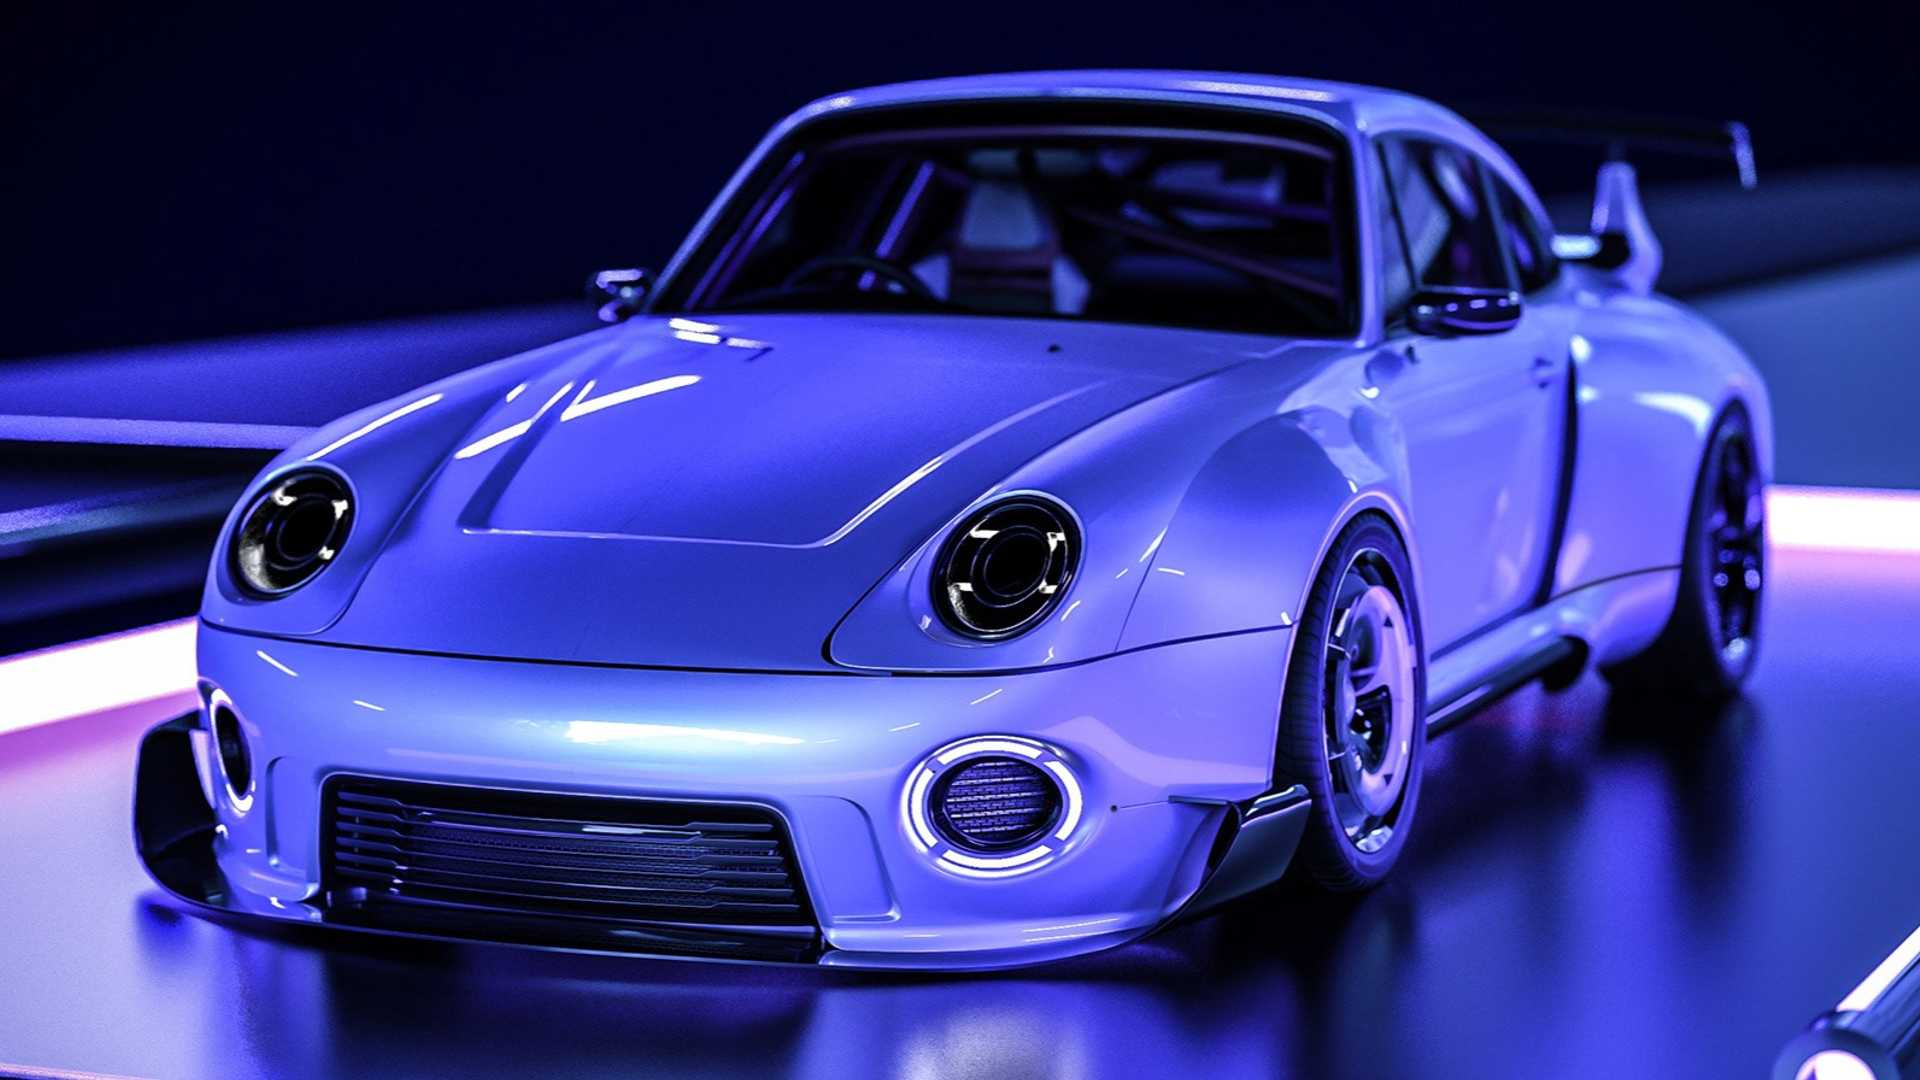 New Retro-Futuristic Renderings Take The Porsche 993 To Another Level